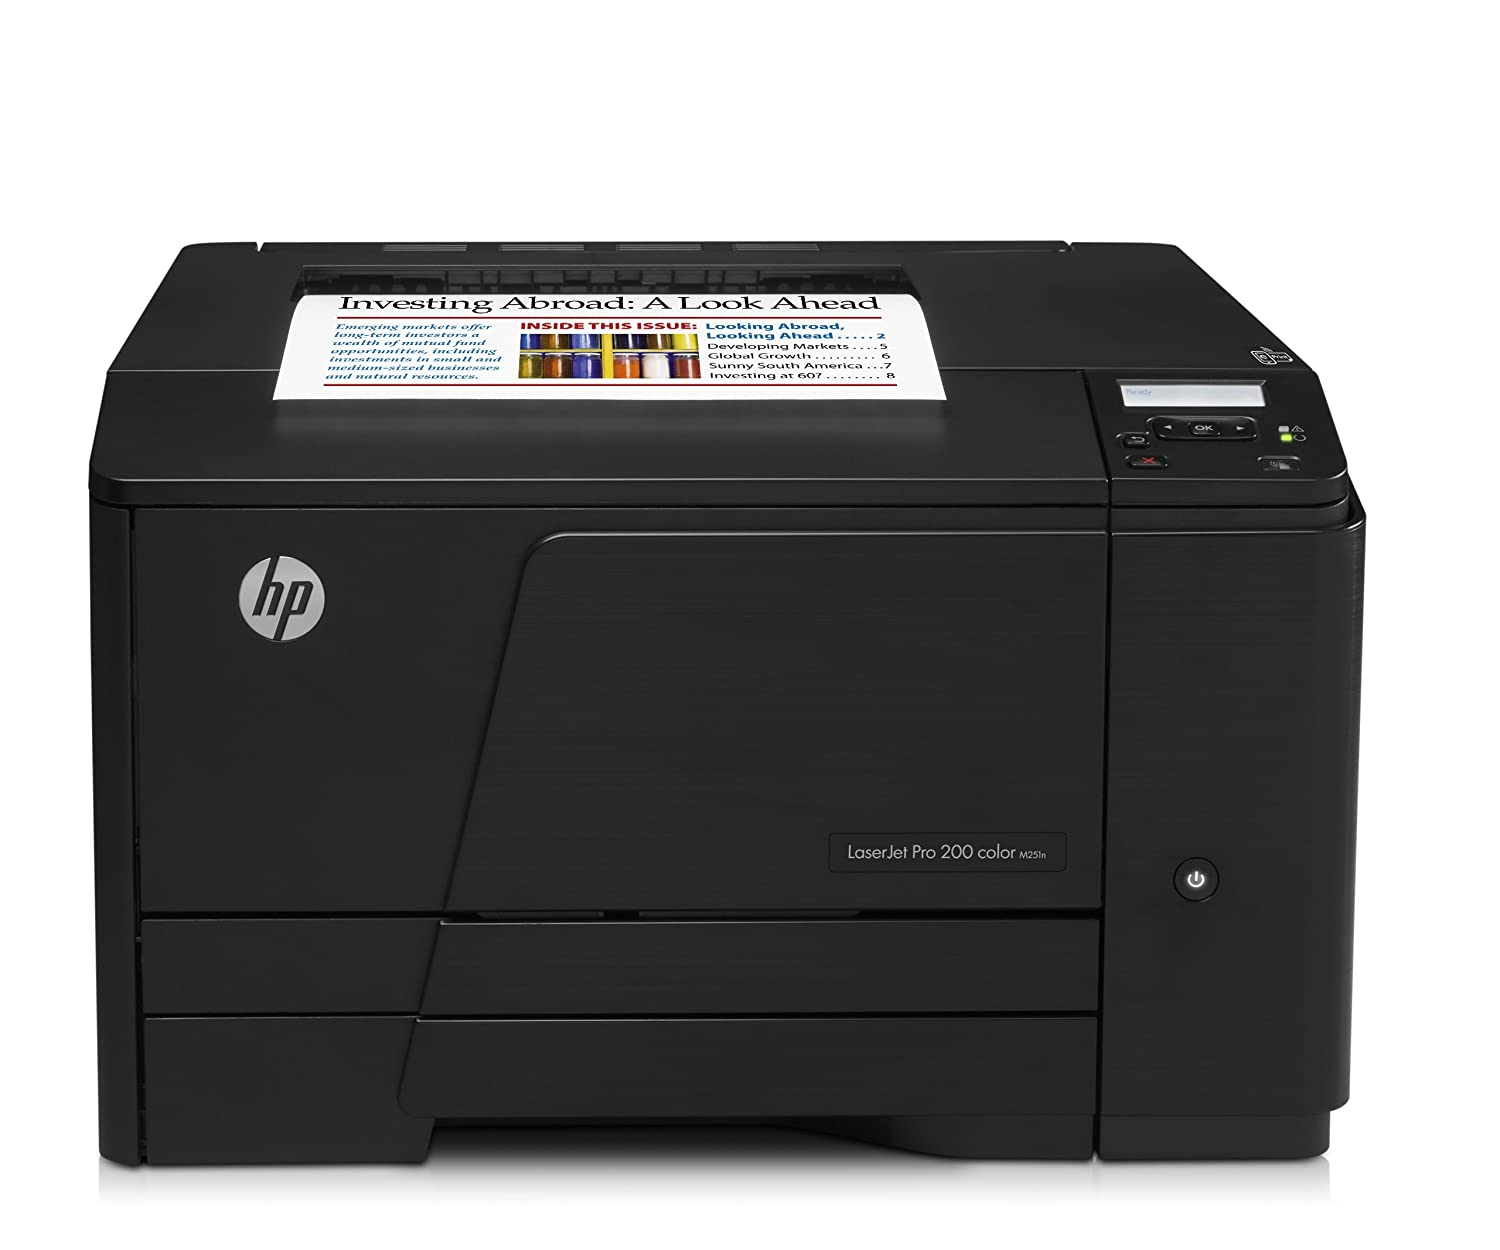 Hp Laserjet Pro 200 Color M251N Used Laser Printer